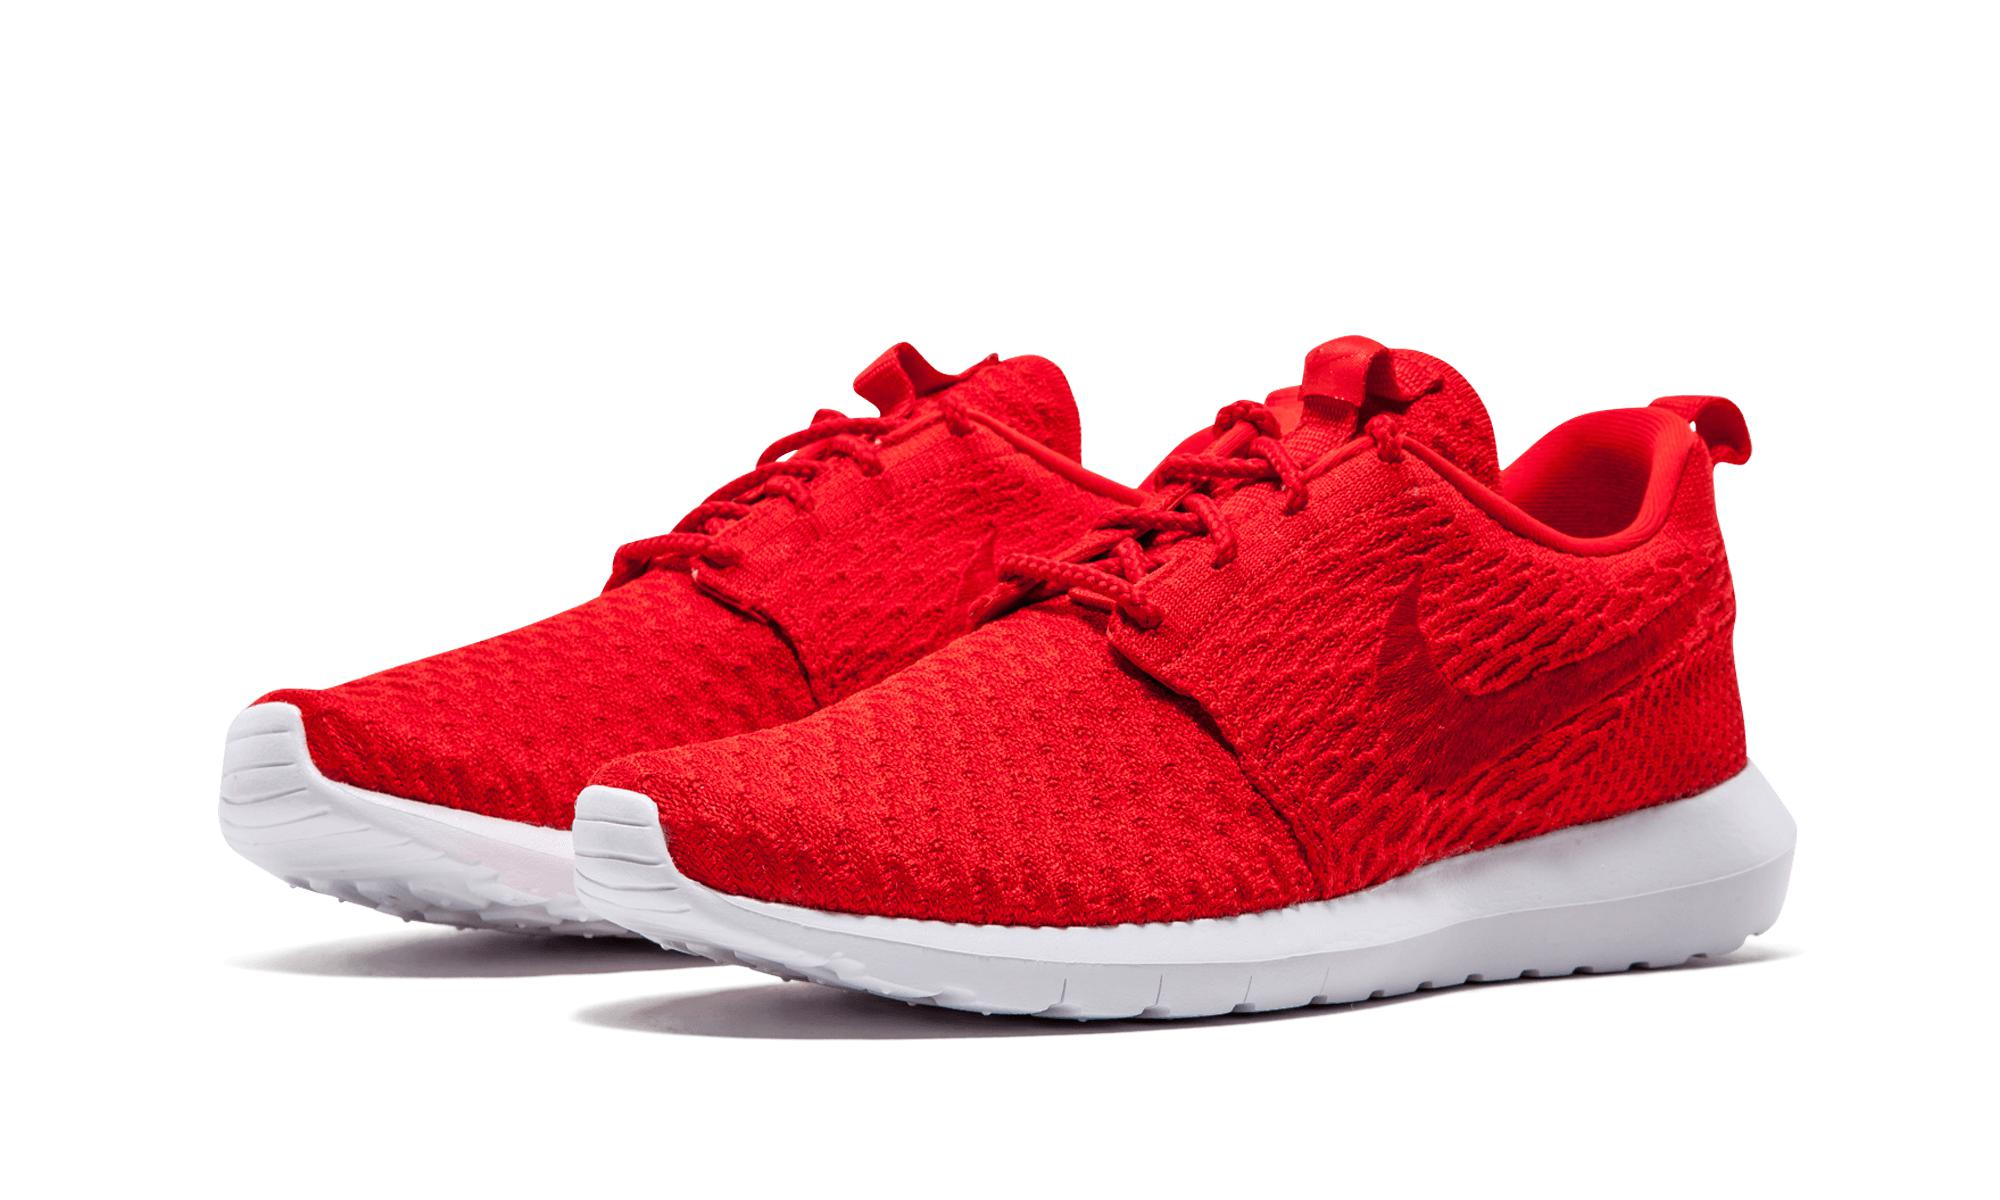 size 40 1d178 3eda2 Nike Roshe Nm Flyknit in Red for Men - Save 44% - Lyst